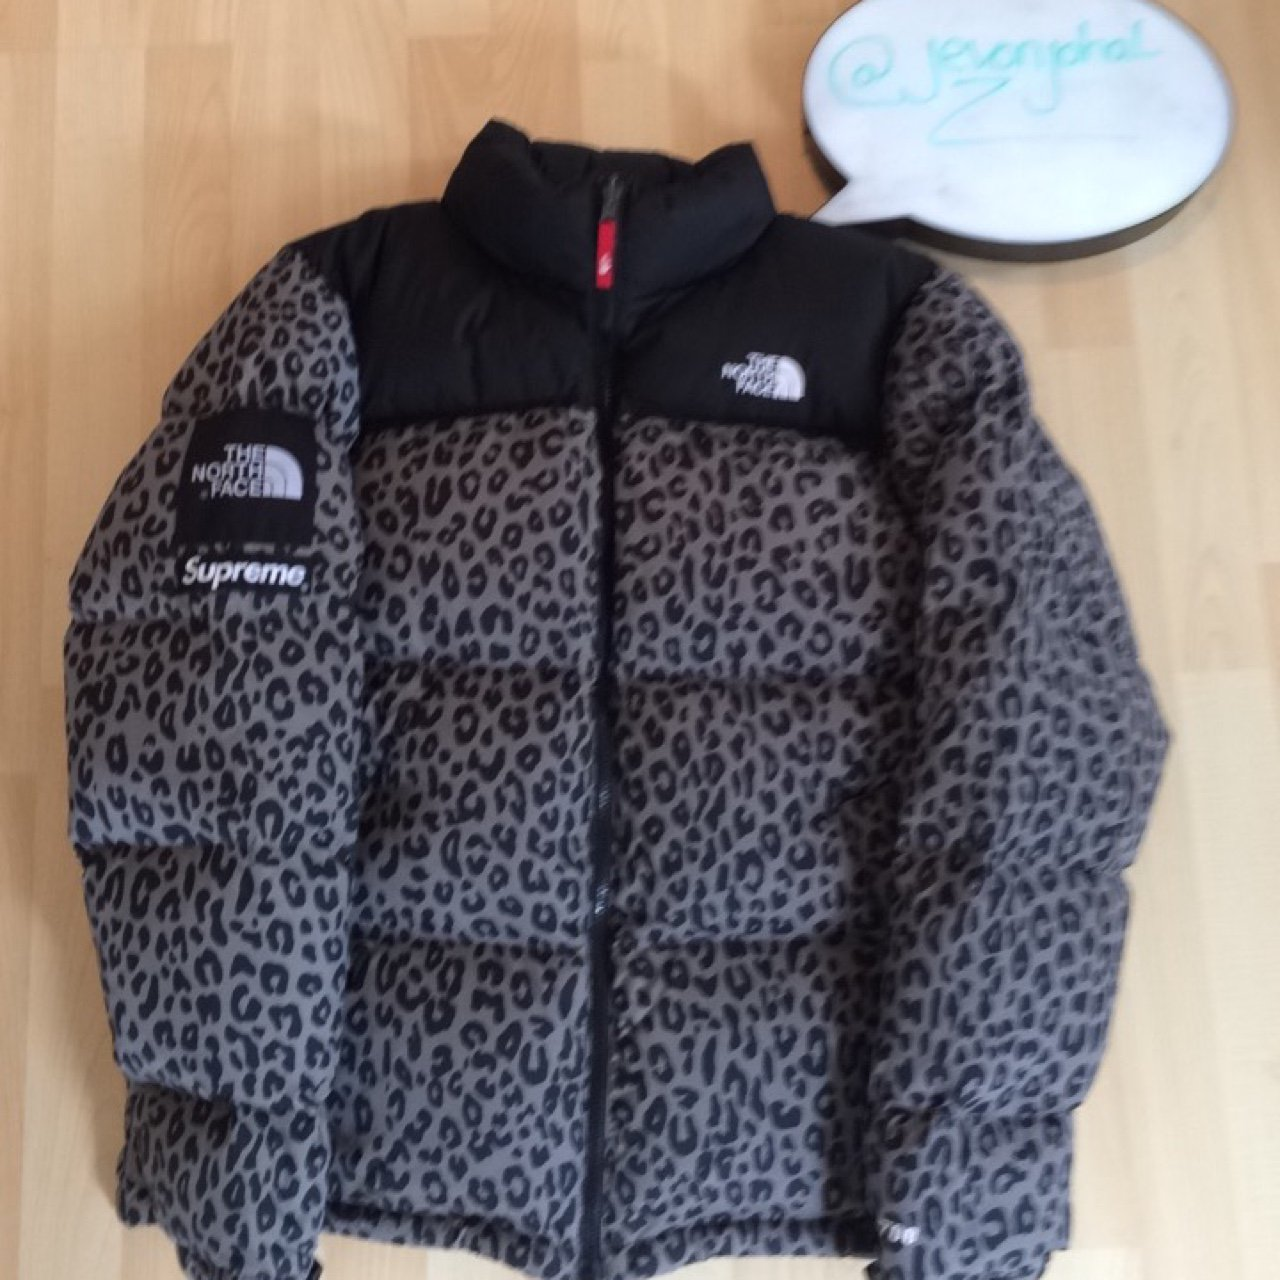 25c46a3e21 Supreme x The North Face  grey leopard nuptse jacket. Size - Depop